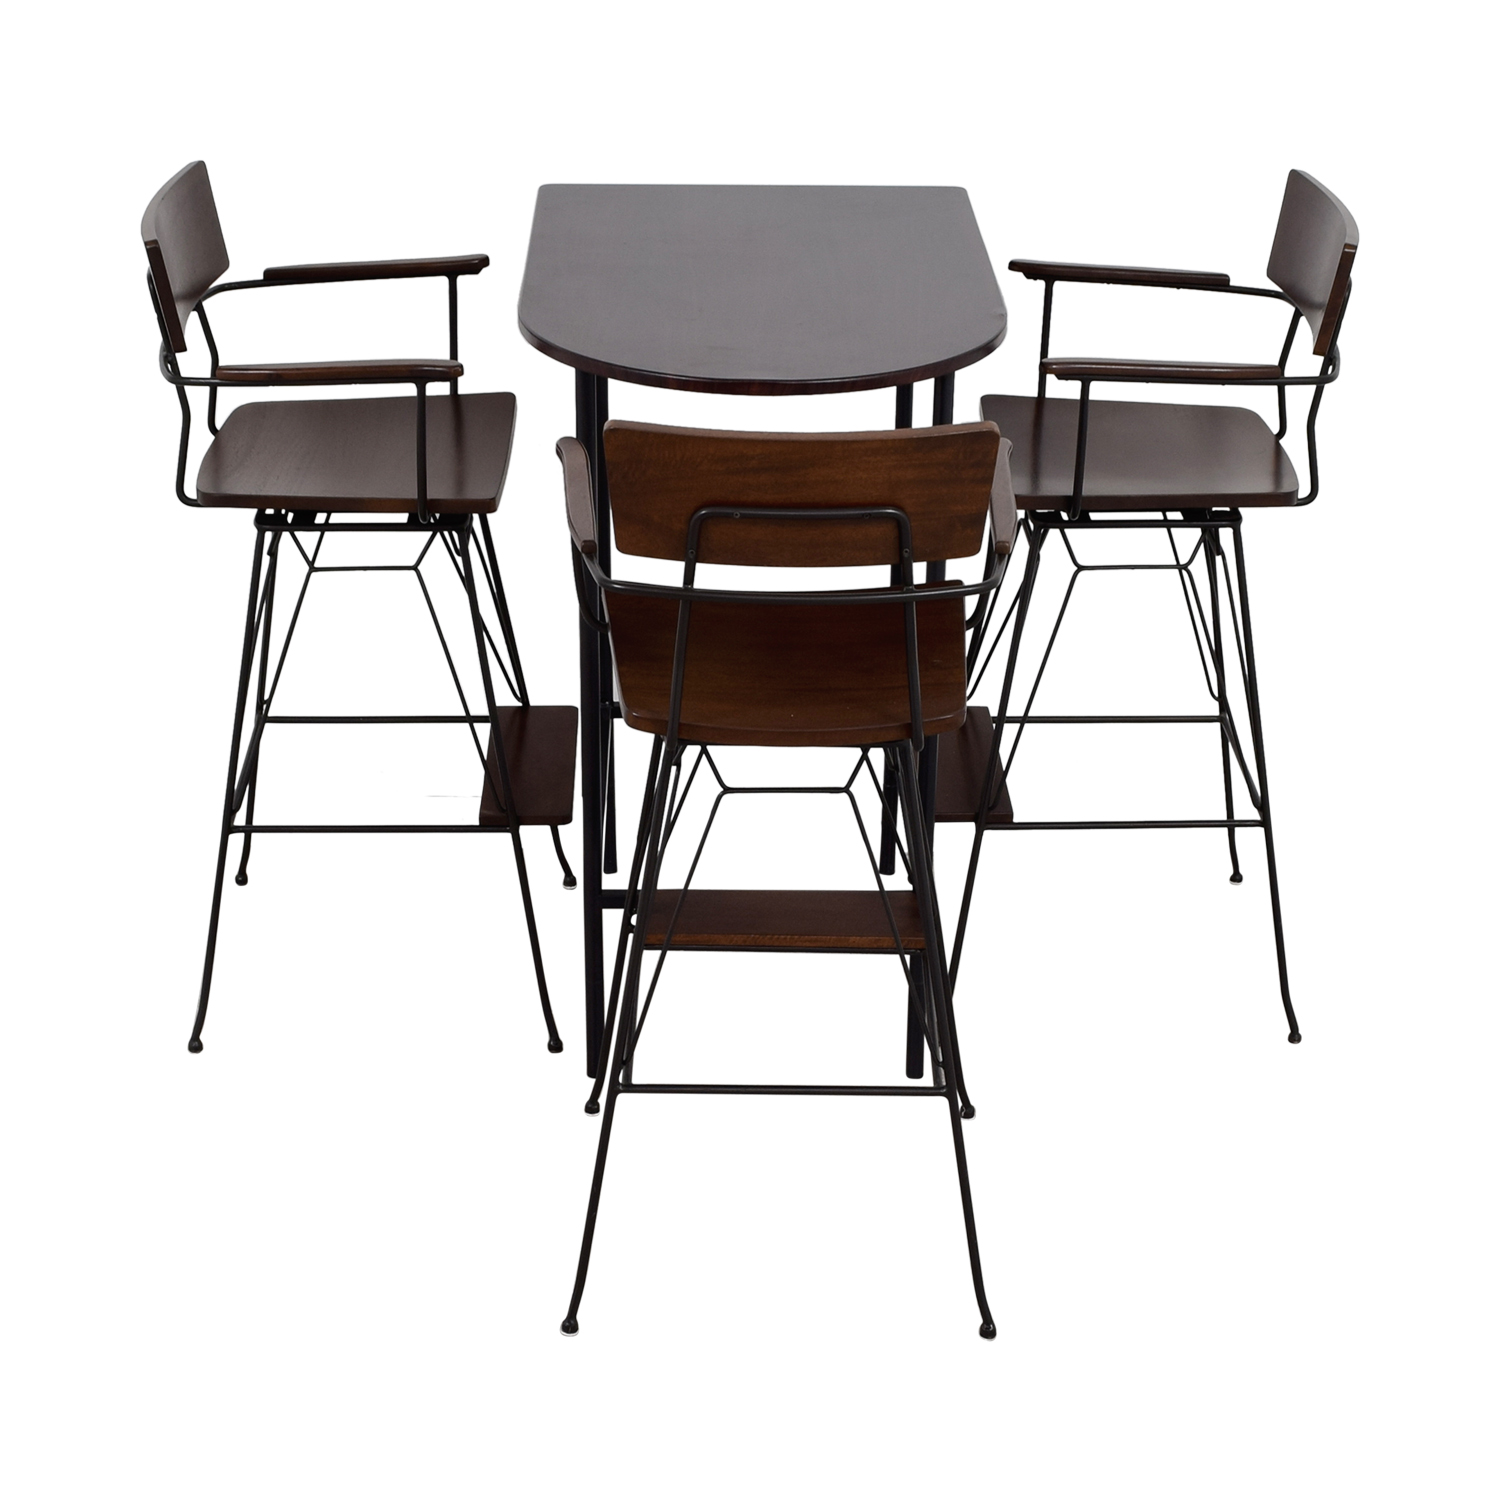 Crate & Barrel Crate & Barrel Pub Dining Set second hand